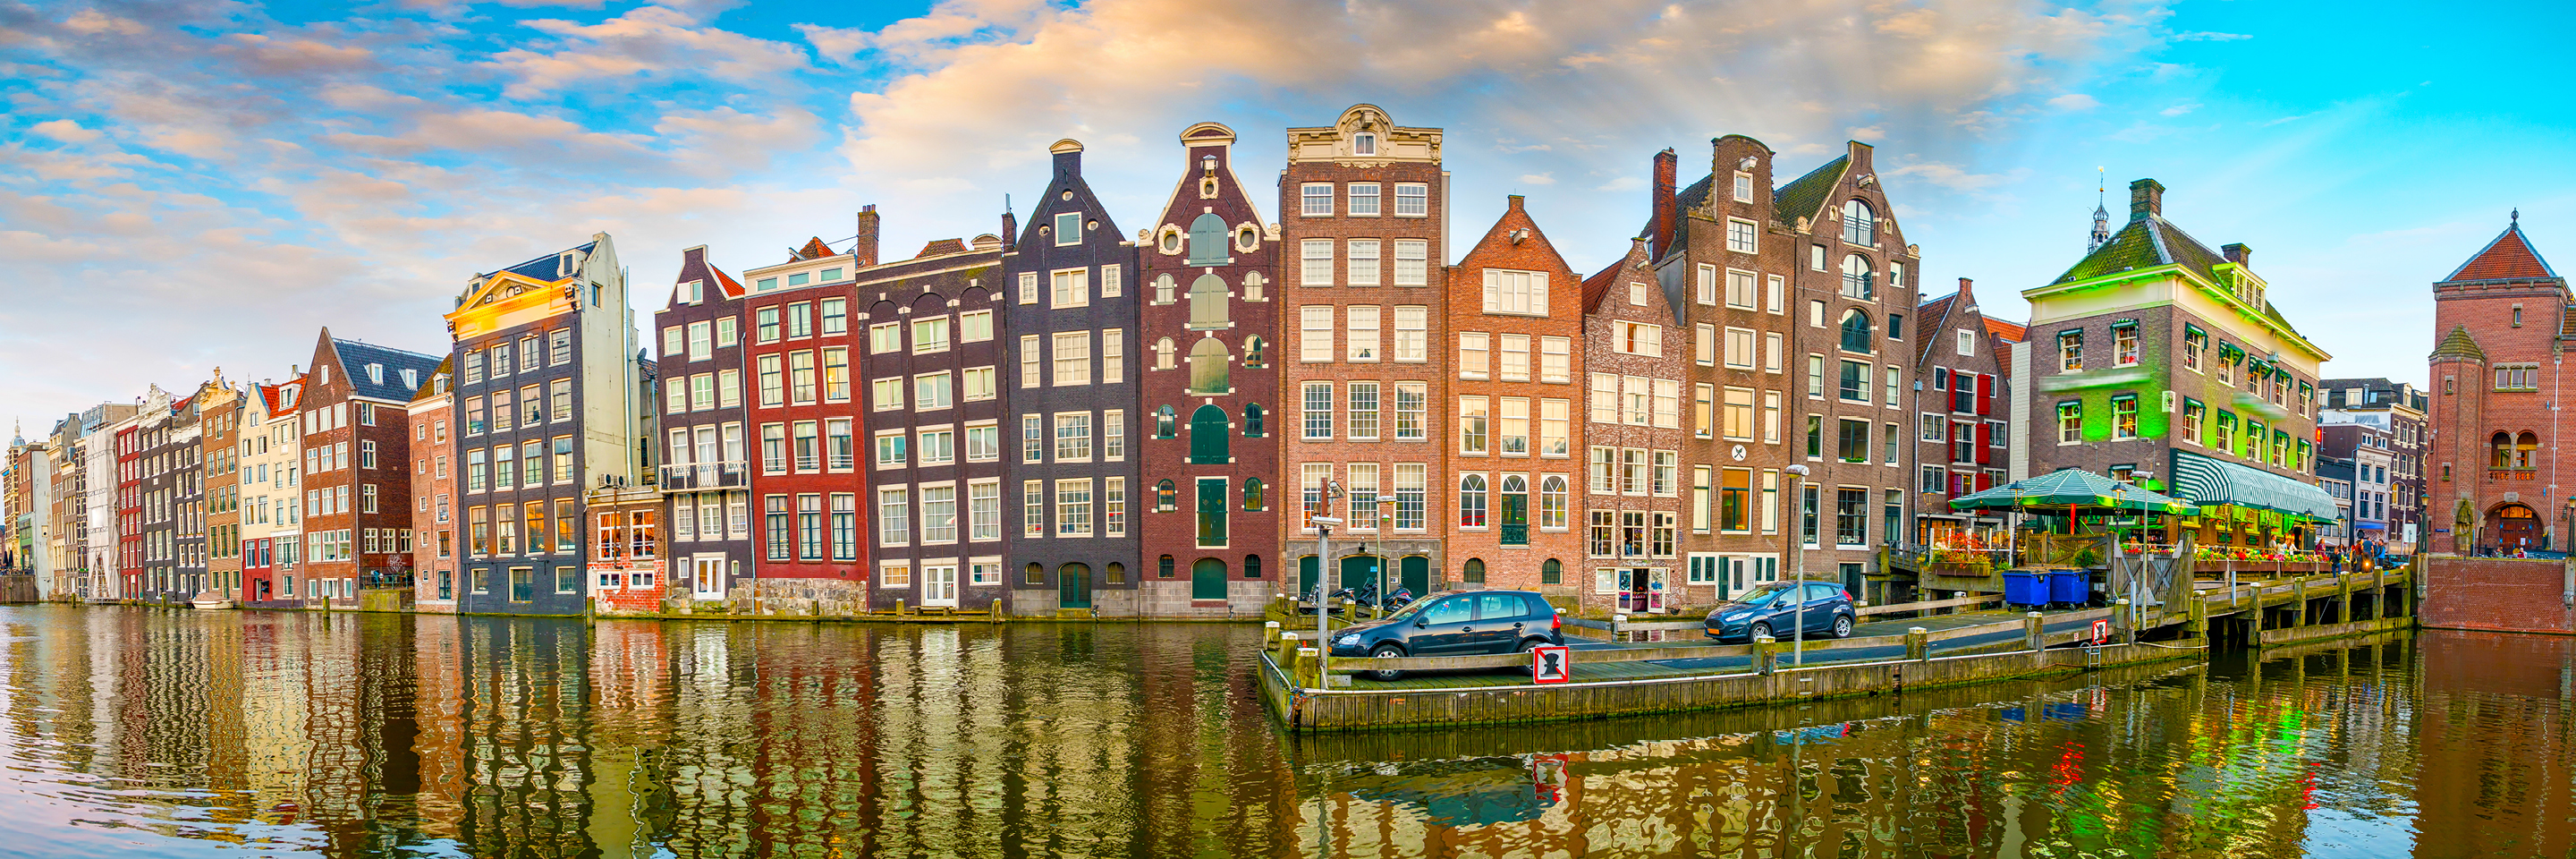 Active & Discovery in Holland & Belgium with 1 Night in Amsterdam